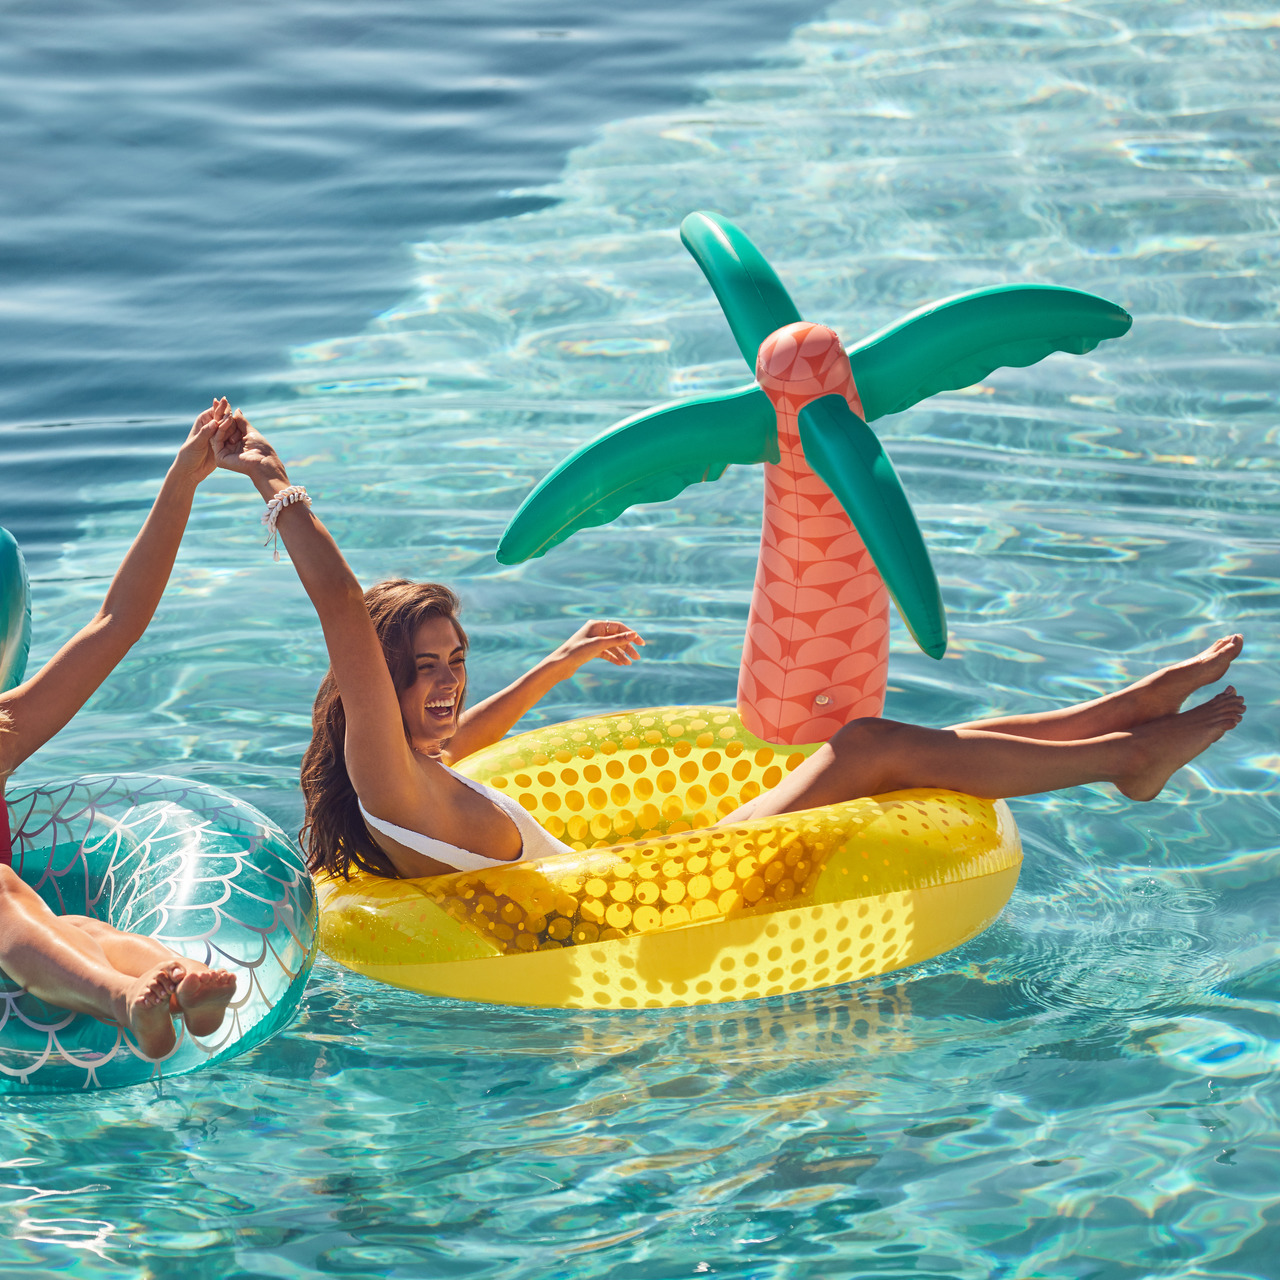 Sunnylife Luxe Pool Ring - Tropical Island image